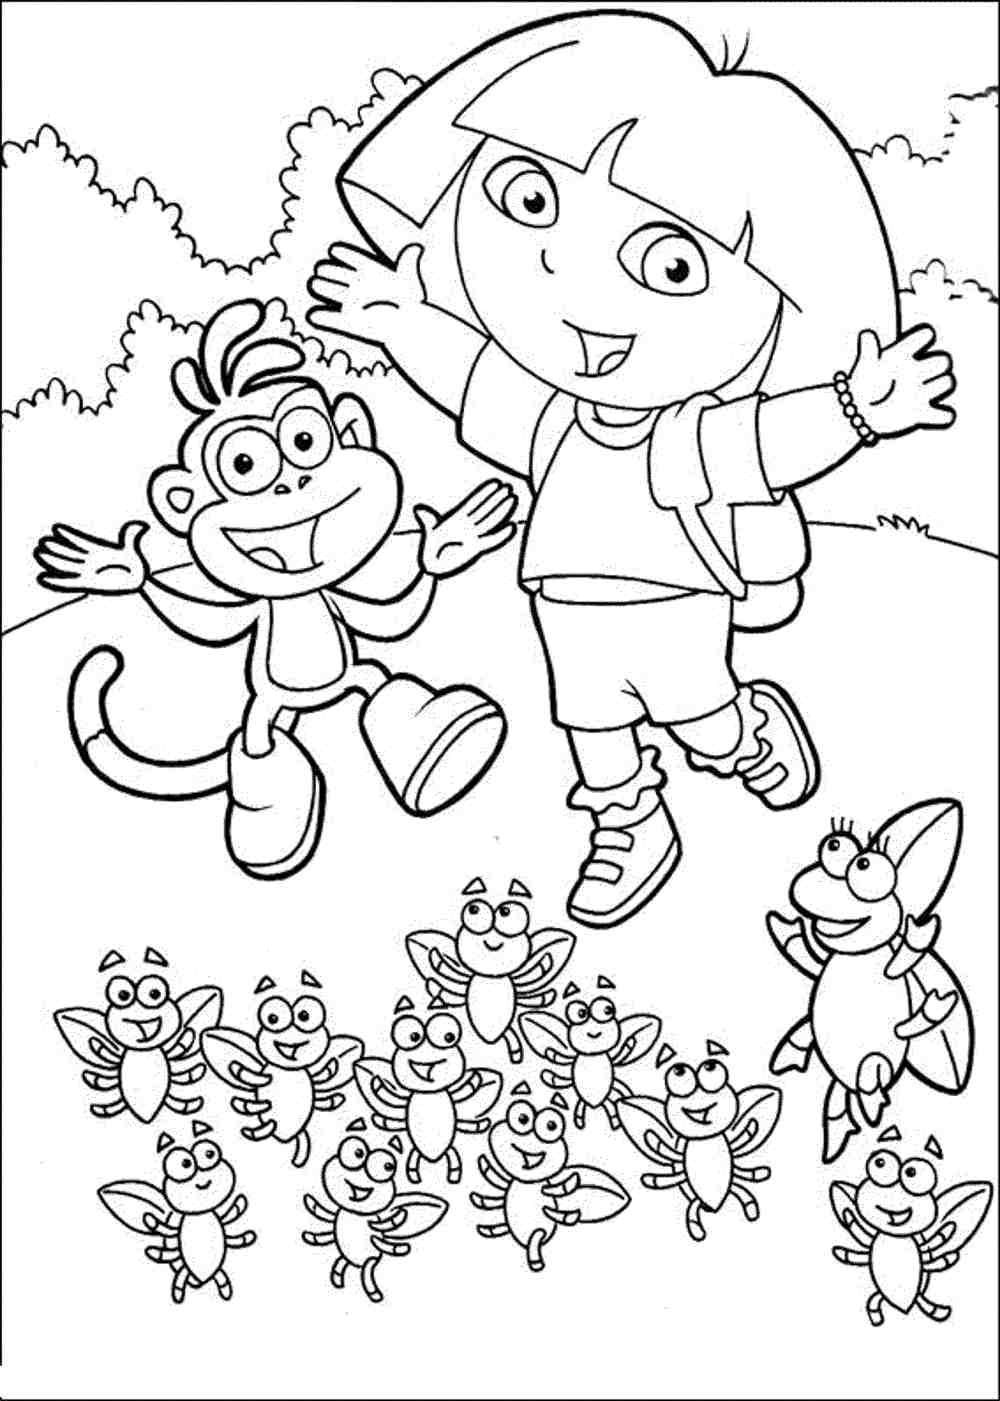 dora colouring pages printable dora 31 coloringcolorcom dora printable pages colouring